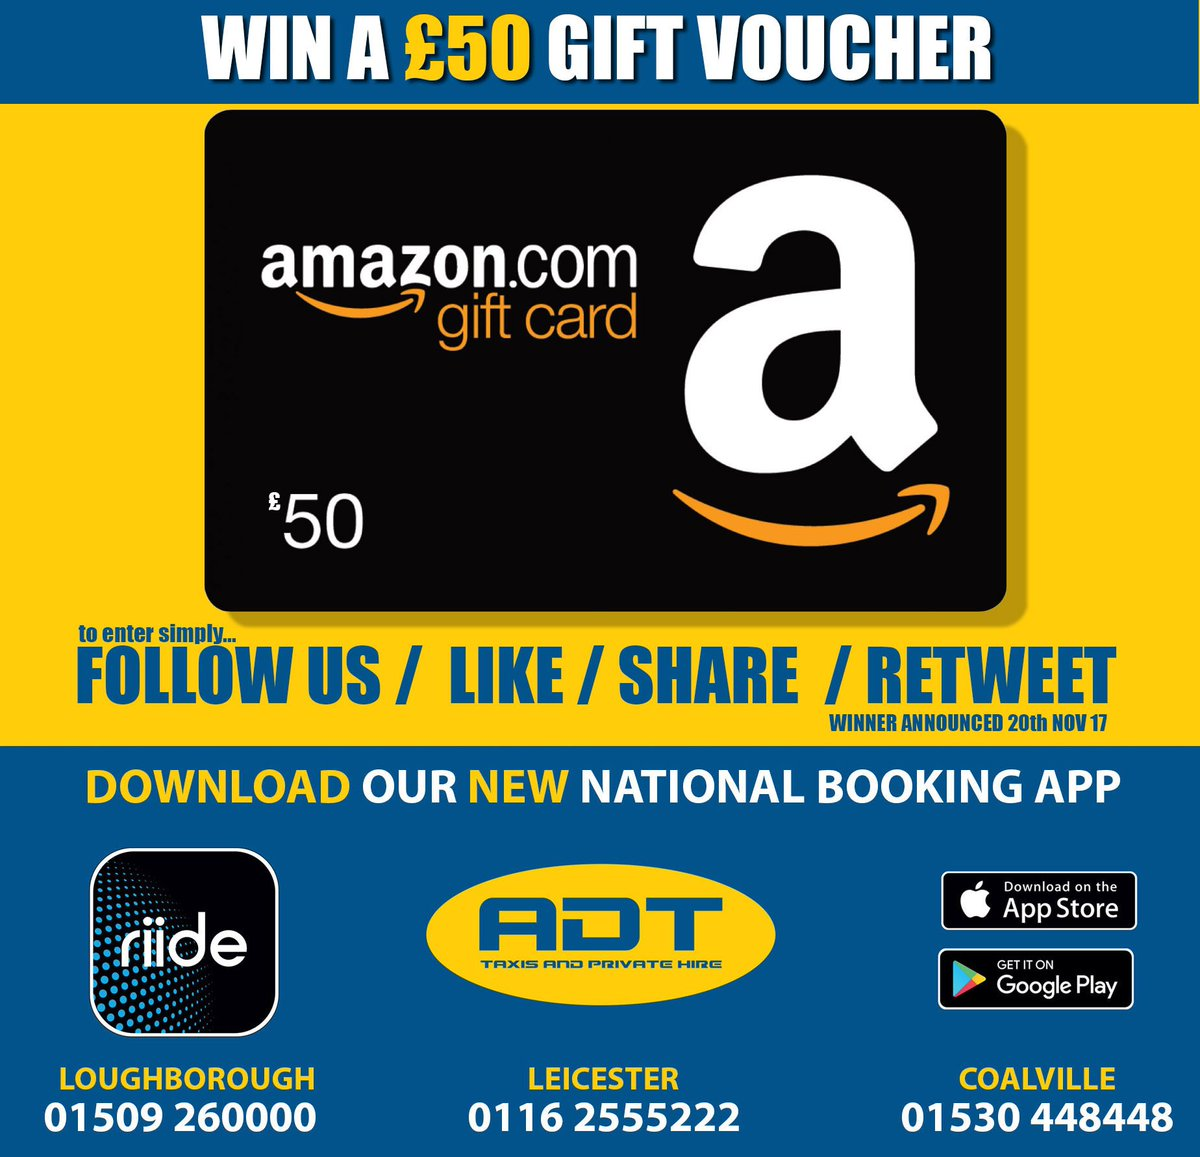 WIN £50 Amazon Gift Vouchers ! How !? Simply LIKE our page... LIKE &amp; SHARE this post and COMMENT what you would like to use the £50 gift vouchers for maybe !? What would YOU spend it on ? #win #gift #prize #competition #free #voucher #£50 #enter #taxi #cab #adttaxis #RT<br>http://pic.twitter.com/h7mJZDPKYq